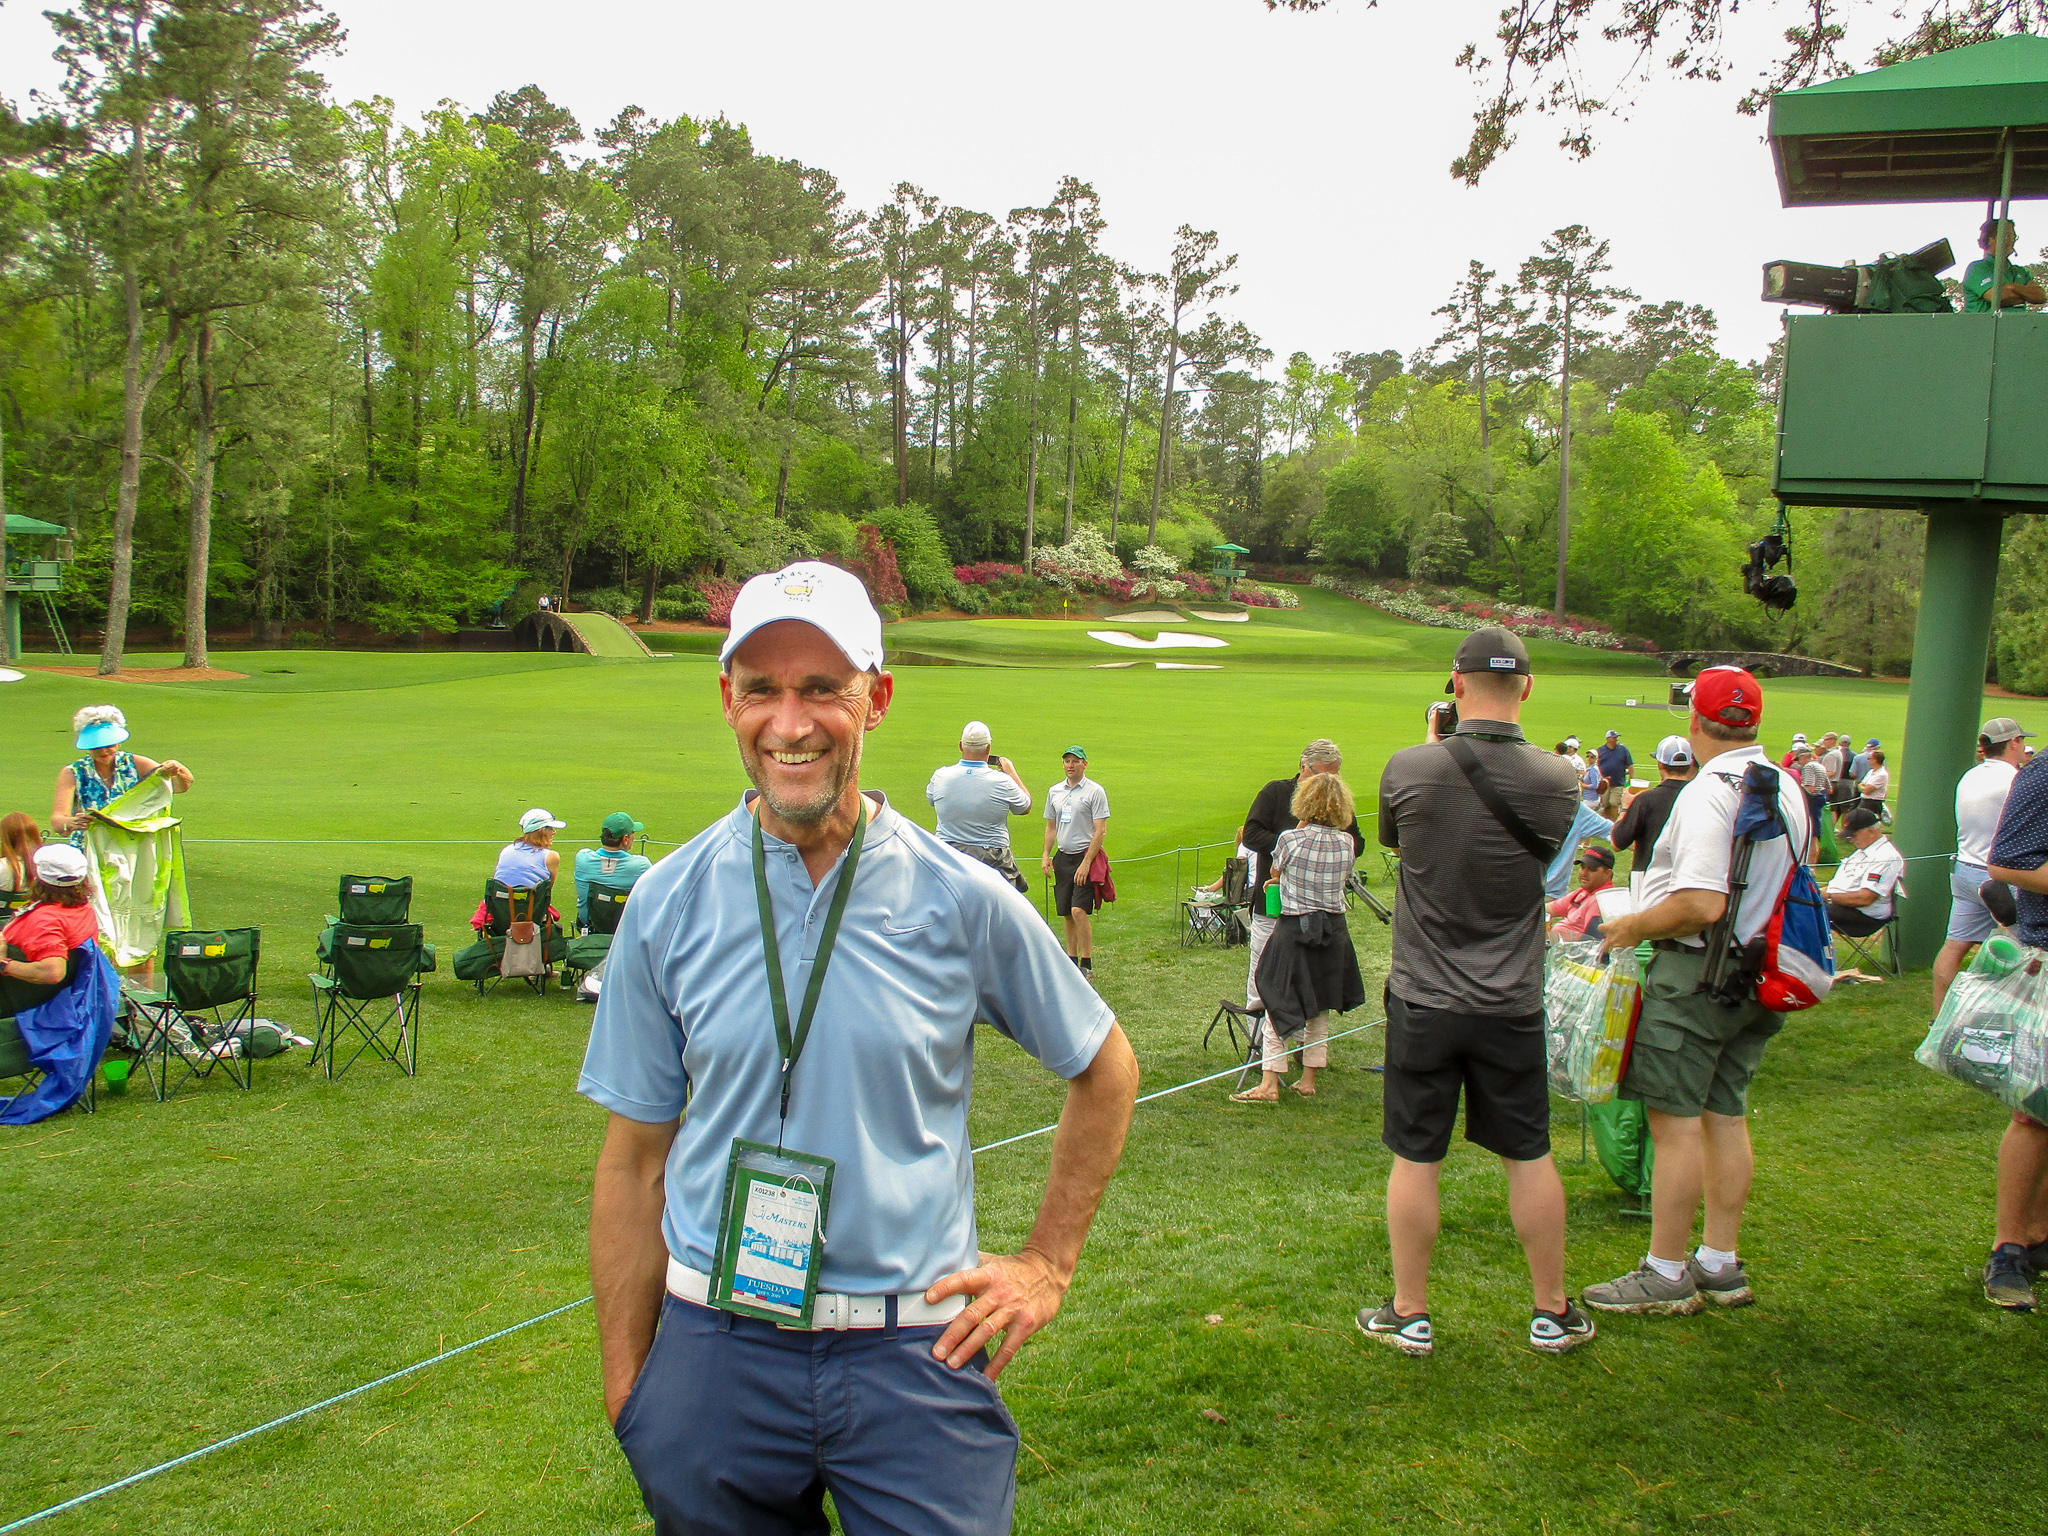 Us-Masters Augusta National Golf Club 2019 Amen Corner